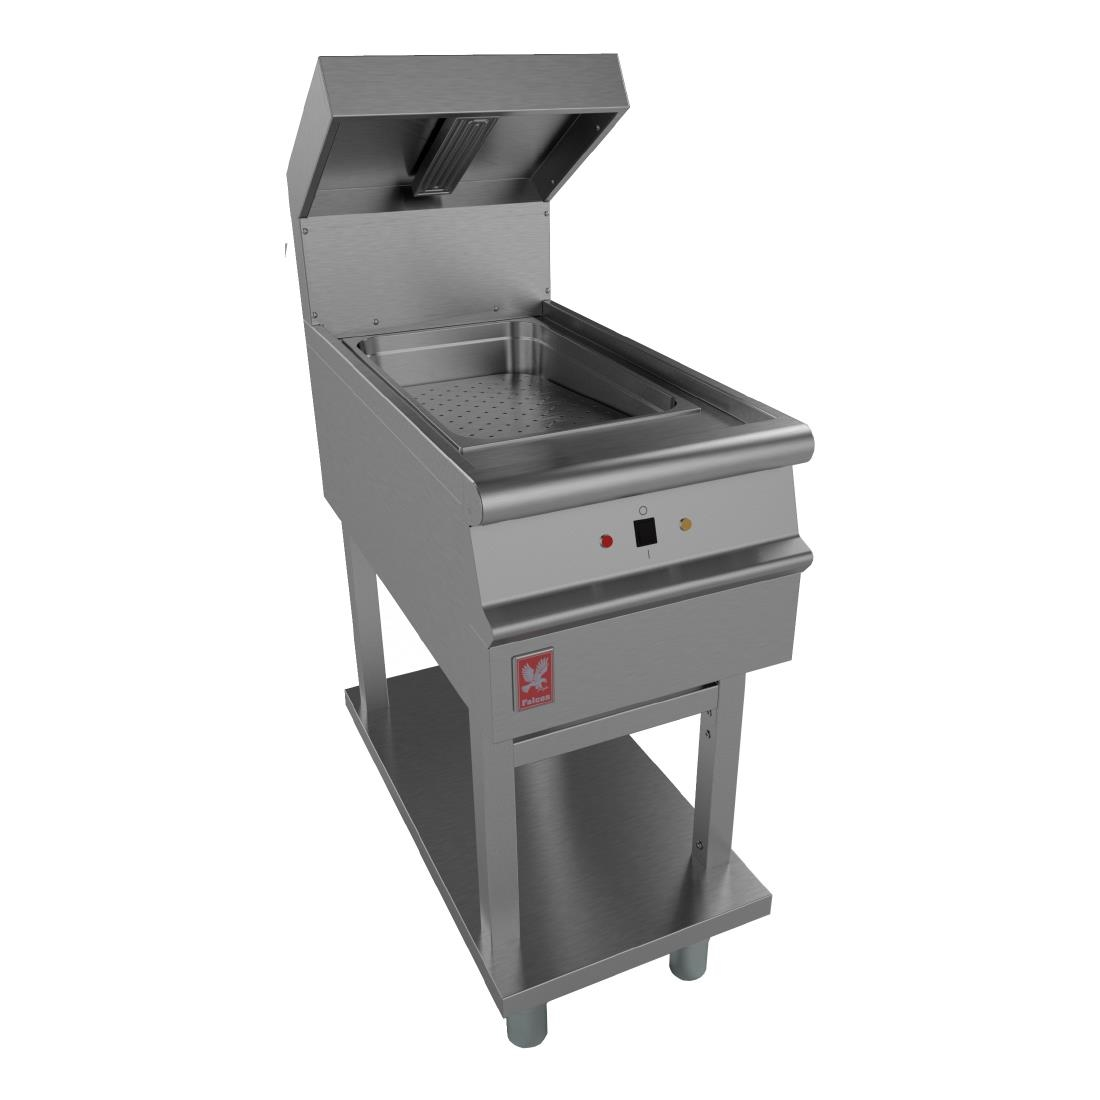 Image of Falcon Dominator Plus Chip Scuttle on Fixed Stand E3405